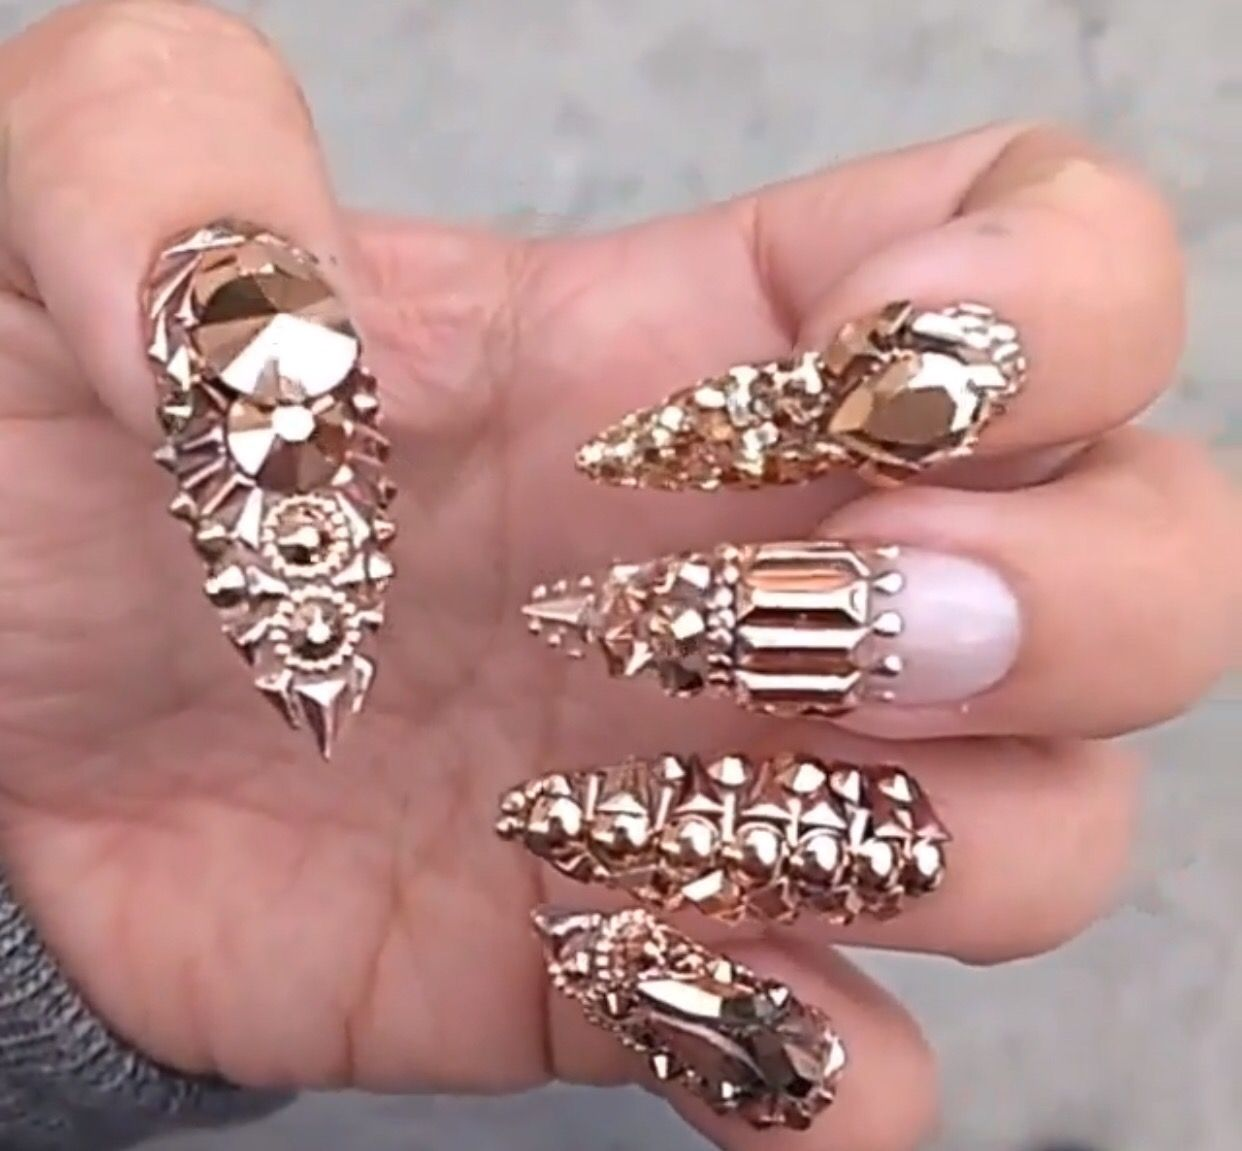 3D gold studded clear nails | Nails | Pinterest | Clear nails, Nail ...